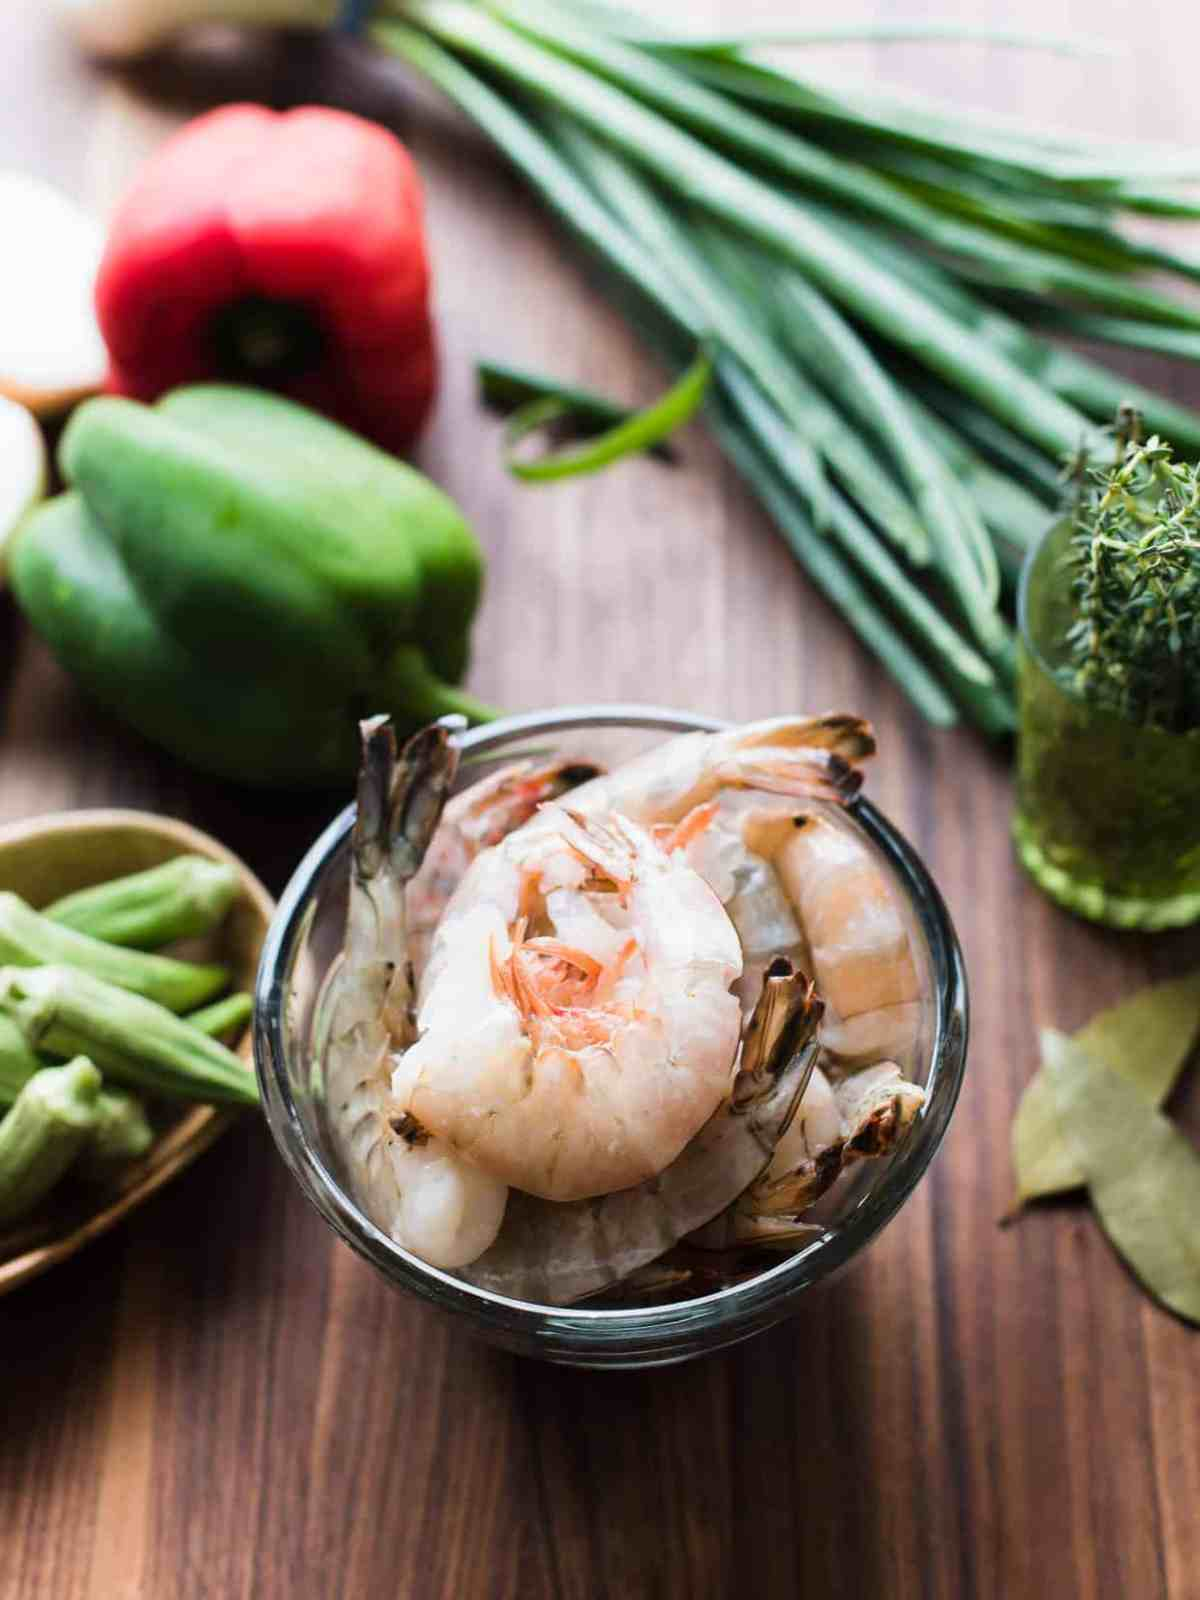 Fresh shrimp surrounded by bell peppers and other ingredients on a wooden surface.